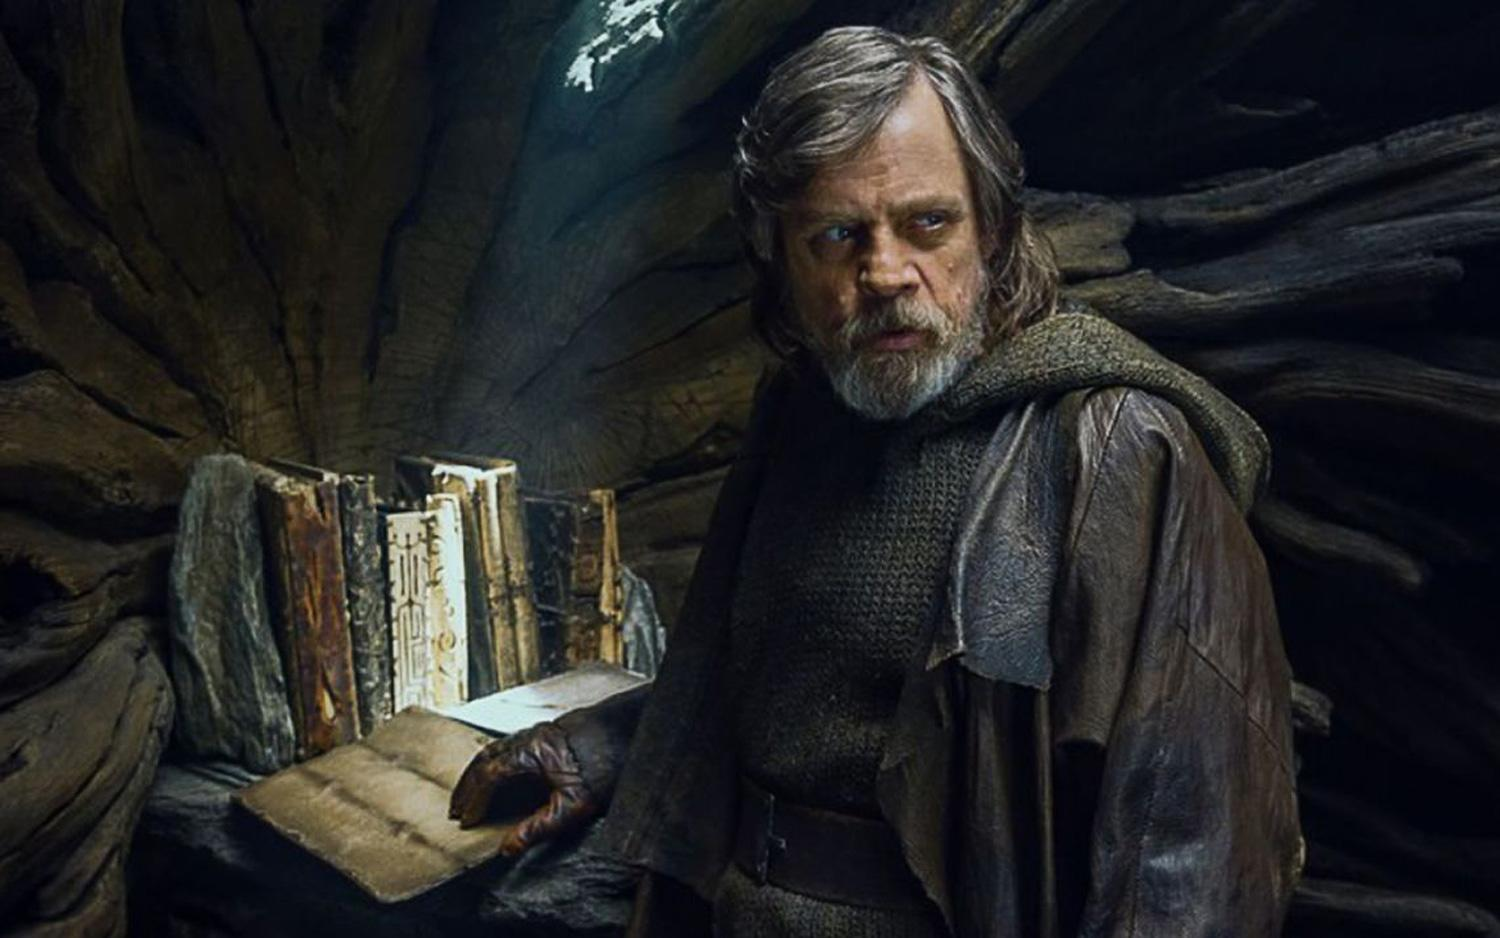 Video Series Shows Roots of Luke Skywalker's Jedi Texts in Medieval Manuscripts